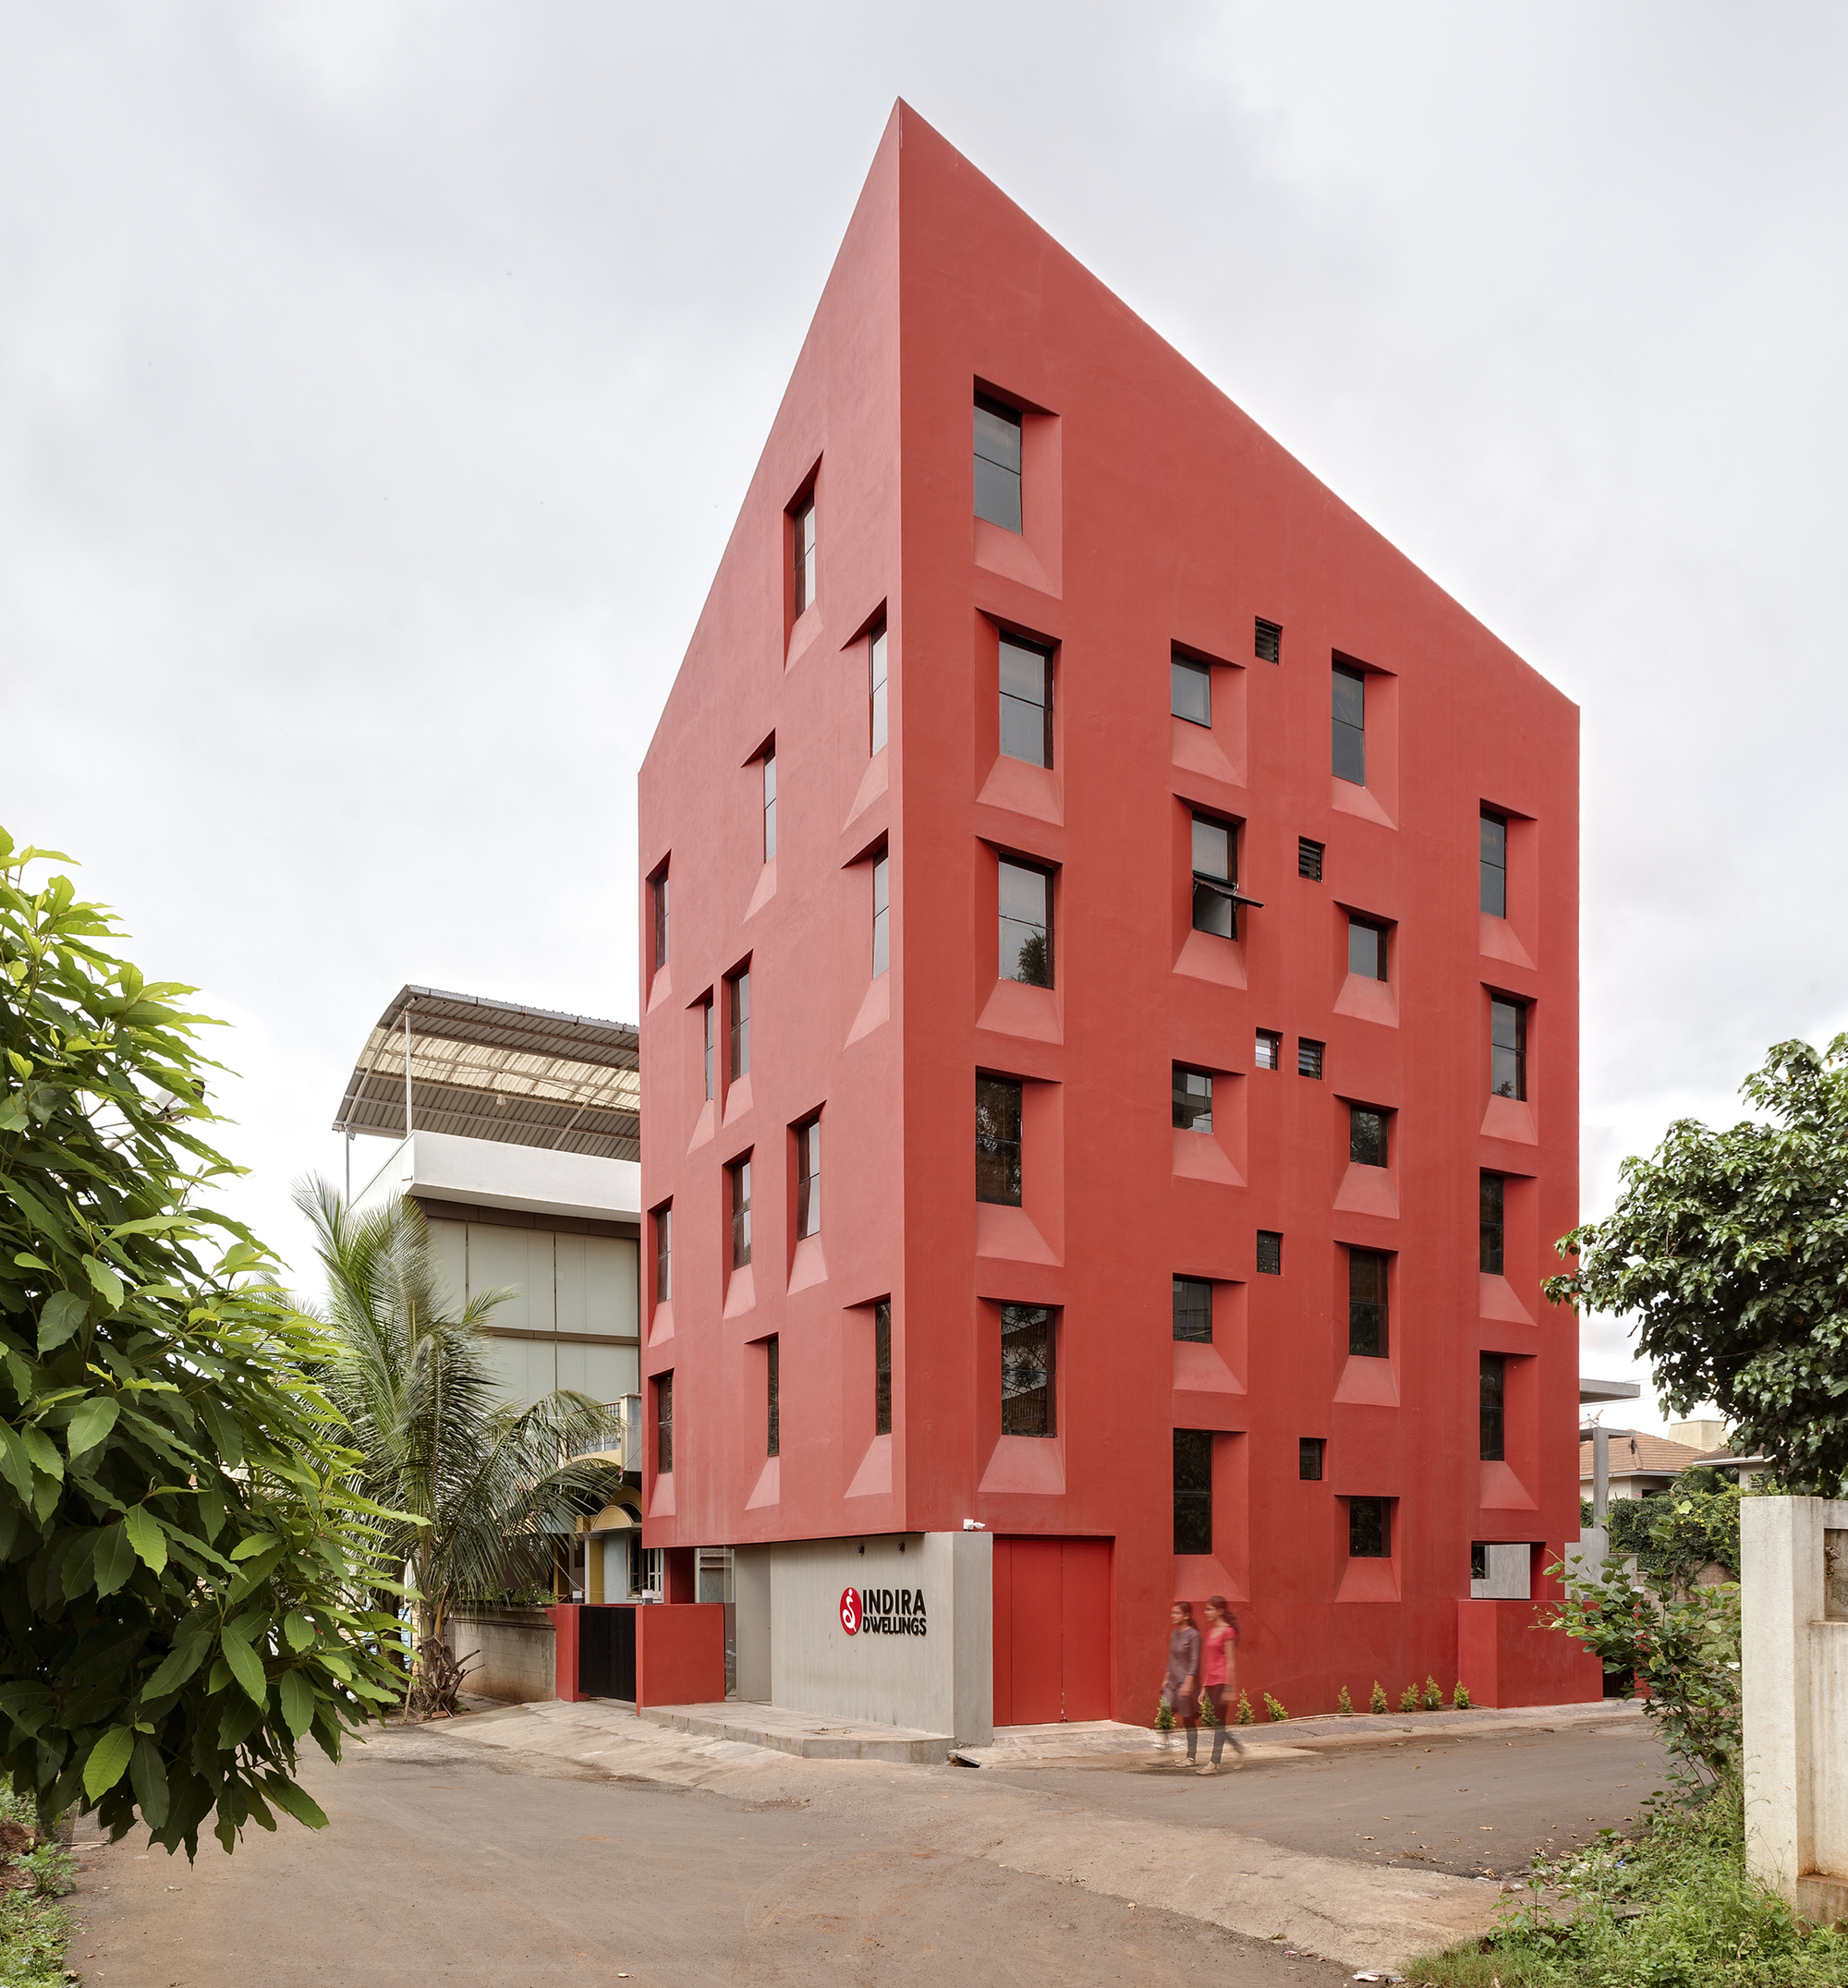 Apartments architecture and design in India | ArchDaily